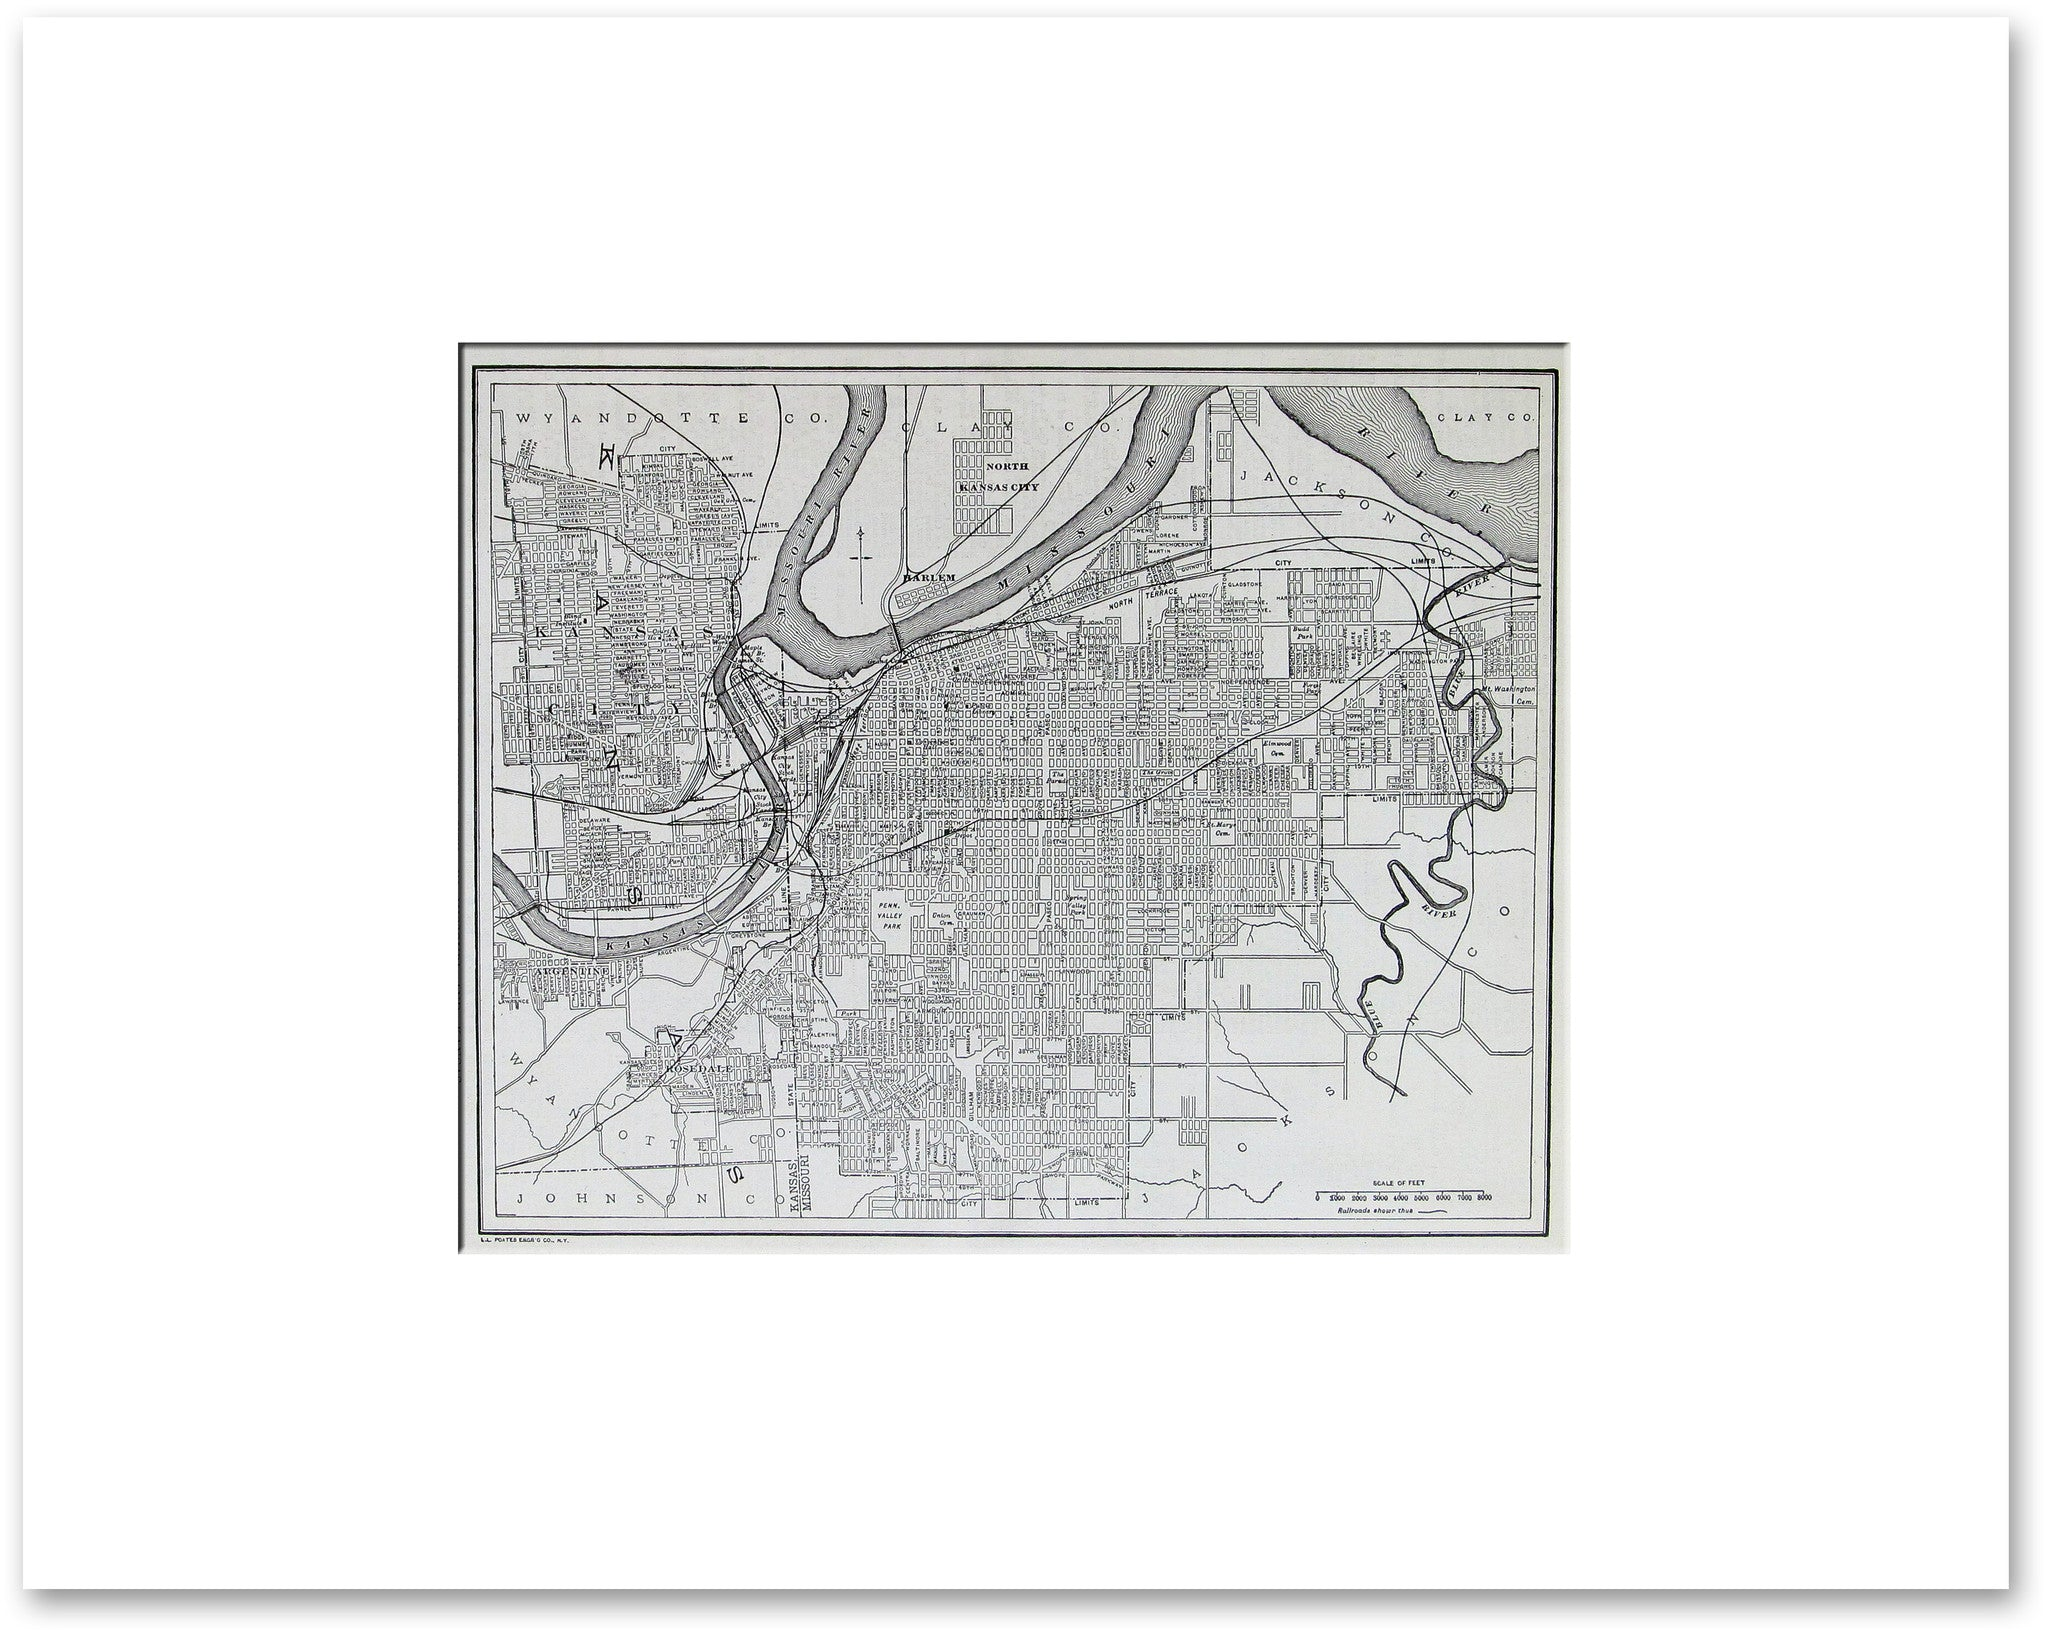 Kansas City 1921 - Vintage Maps